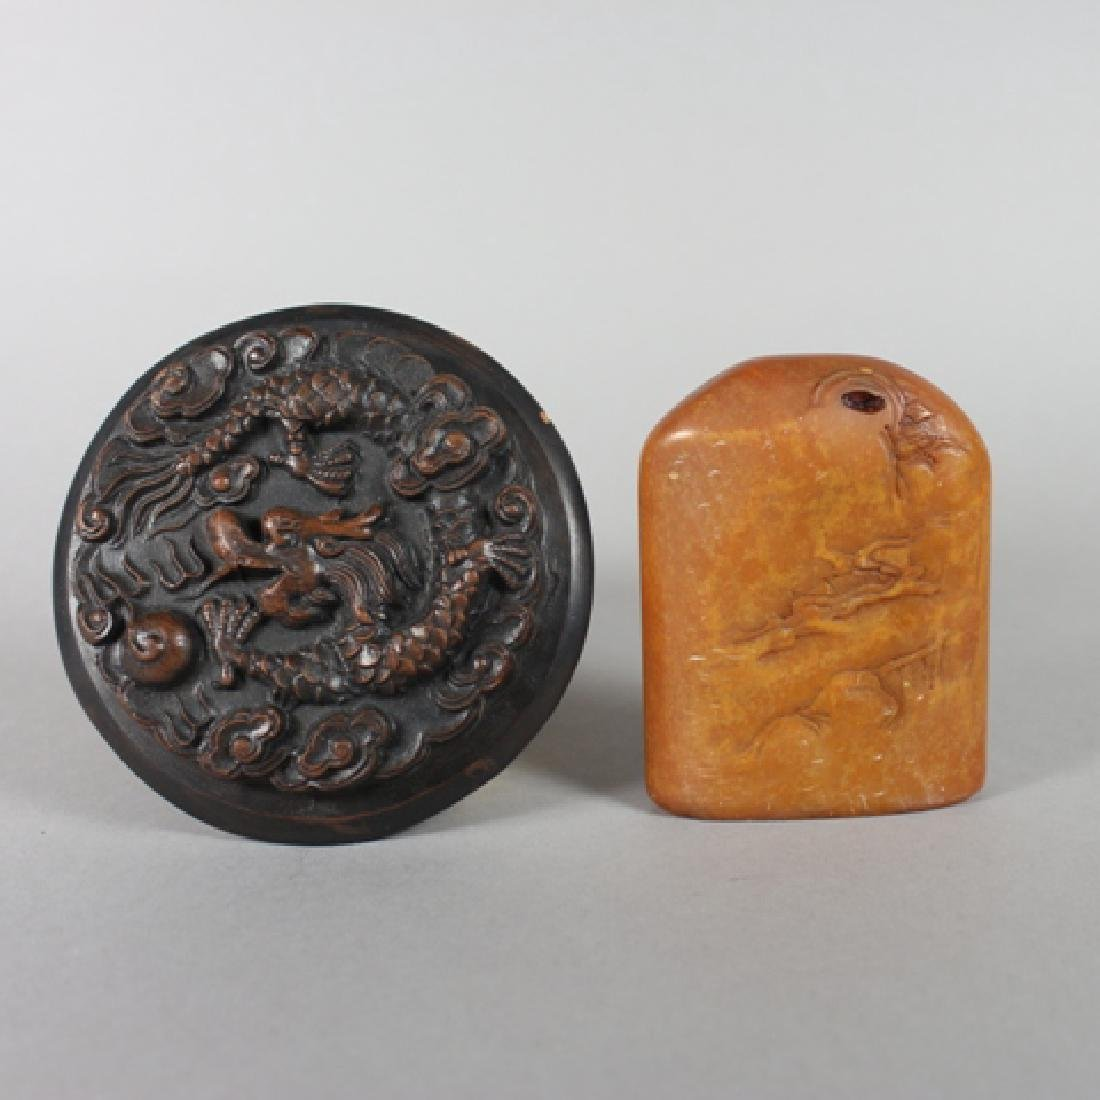 Carved Soapstone and Molded Ceramic Paperweights